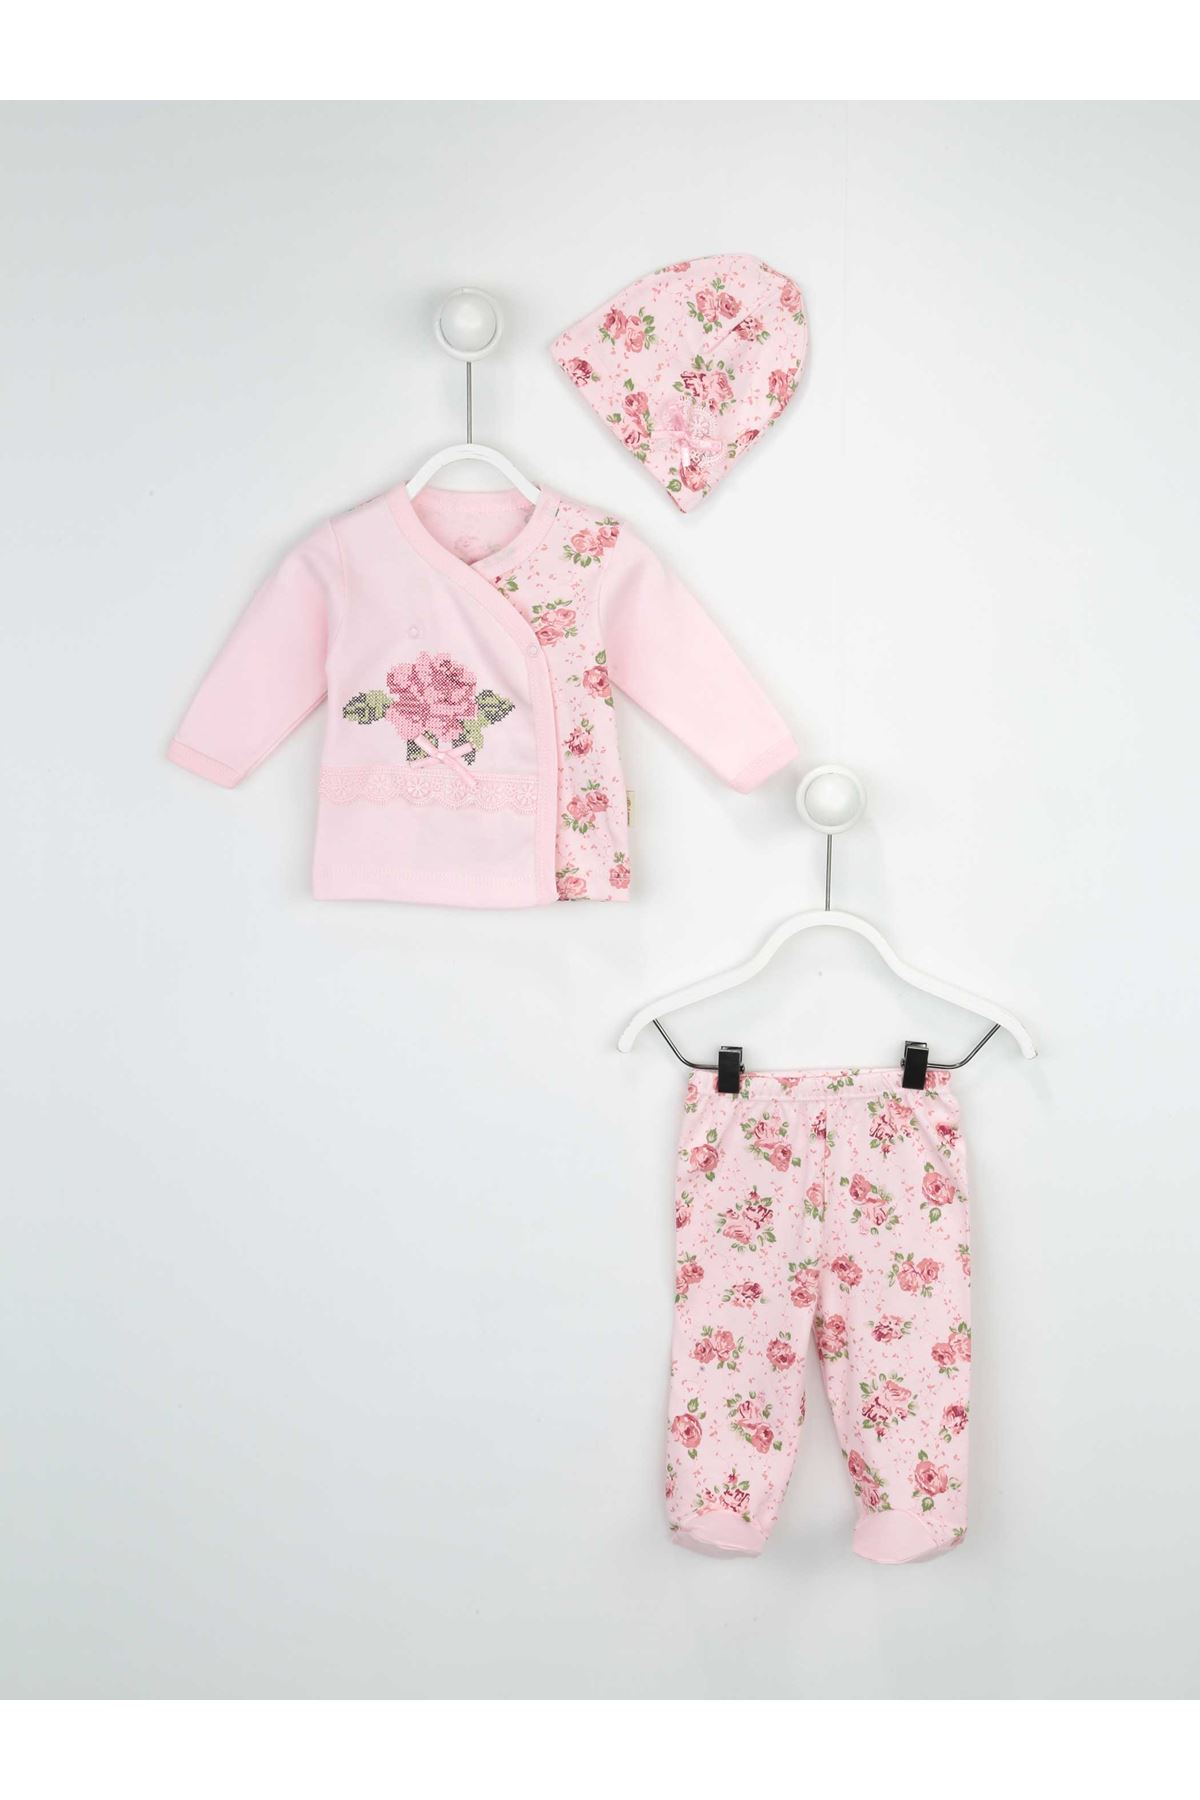 Pink Baby Girl Suit Rose Patterned Seasonal Clothes 3 Piece Girls Babies Clothing Outfit Models